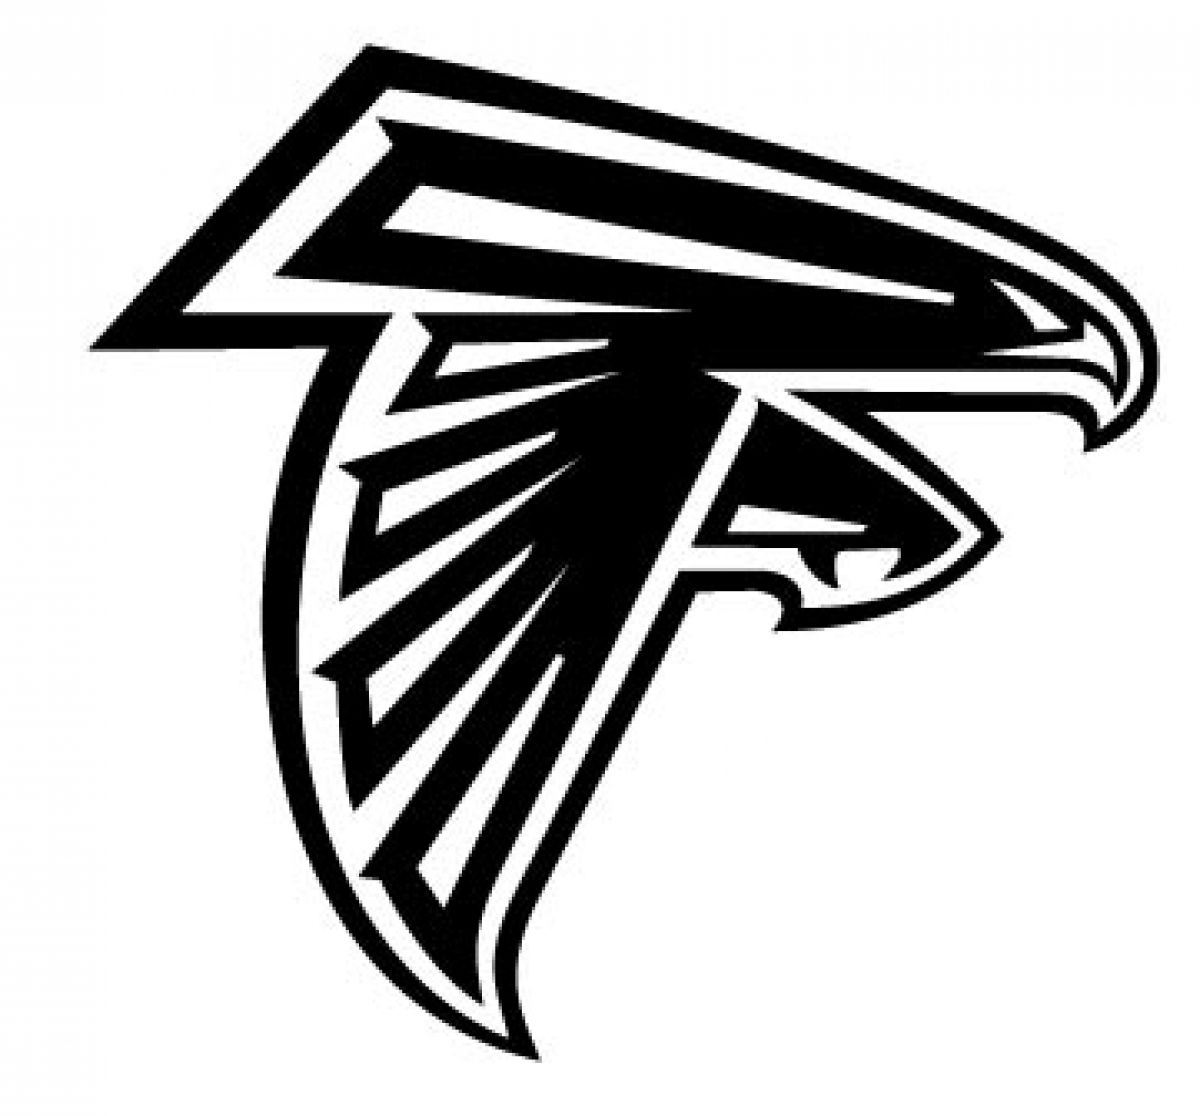 Free atlanta falcons clipart - ClipartFest